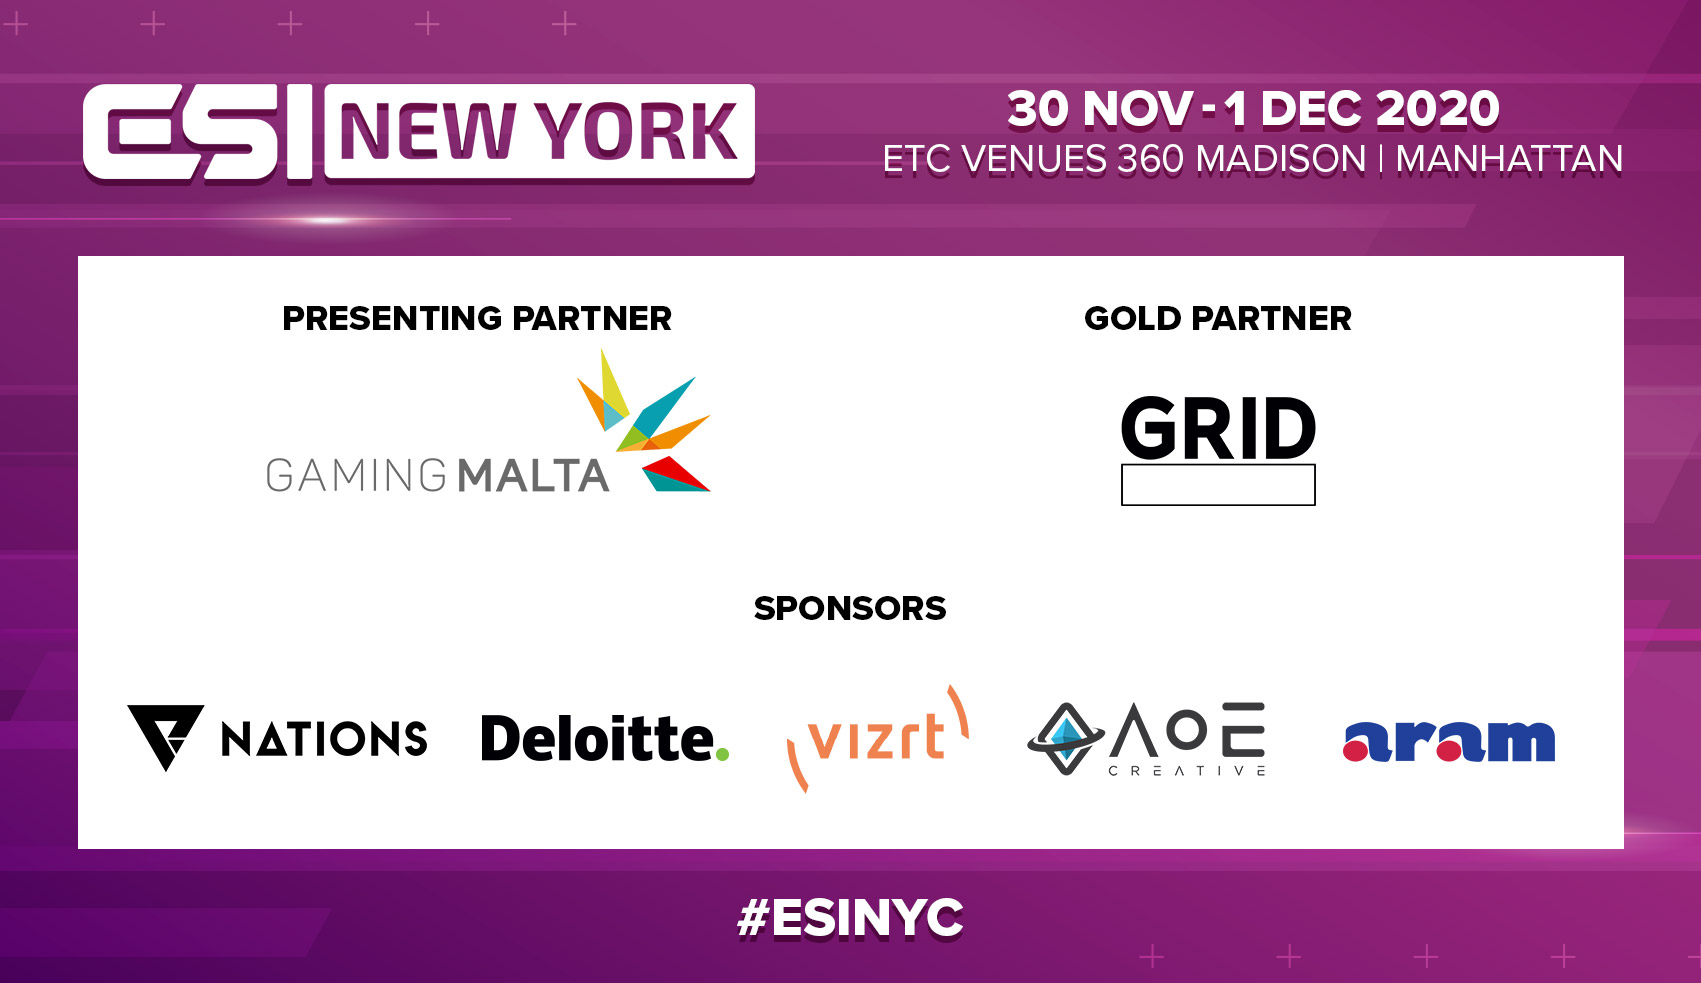 ESI New York Partners Rescheduled